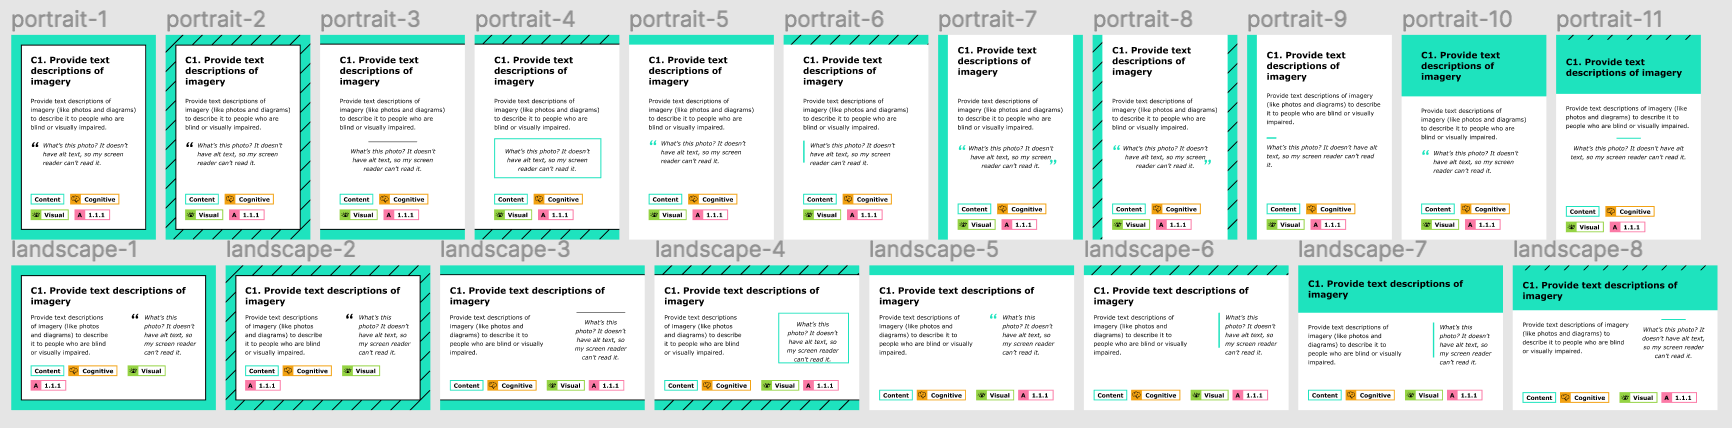 Screenshot of 11 different iterations of the card format, with the first design on the left and the final one on the right. These iterations show different options for format, amount of color, what section to emphasize, and options for portrait and landscape. To access this information in a non-image format, go to this  figma file 's cards & illustrations page.